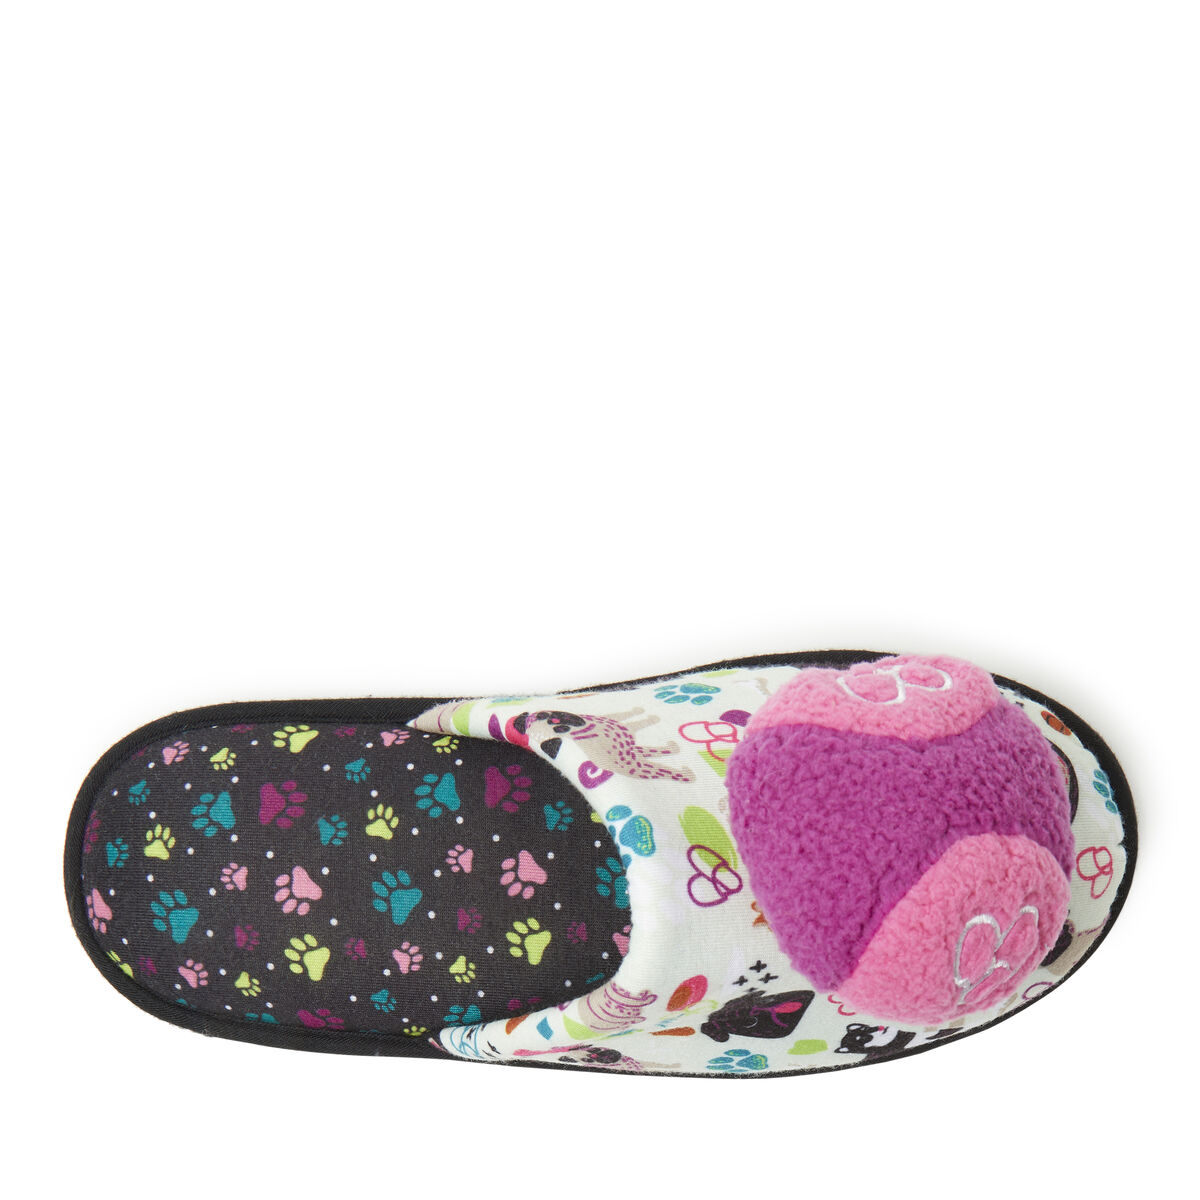 Women's Fetch Scuff with Detachable Dog Toy